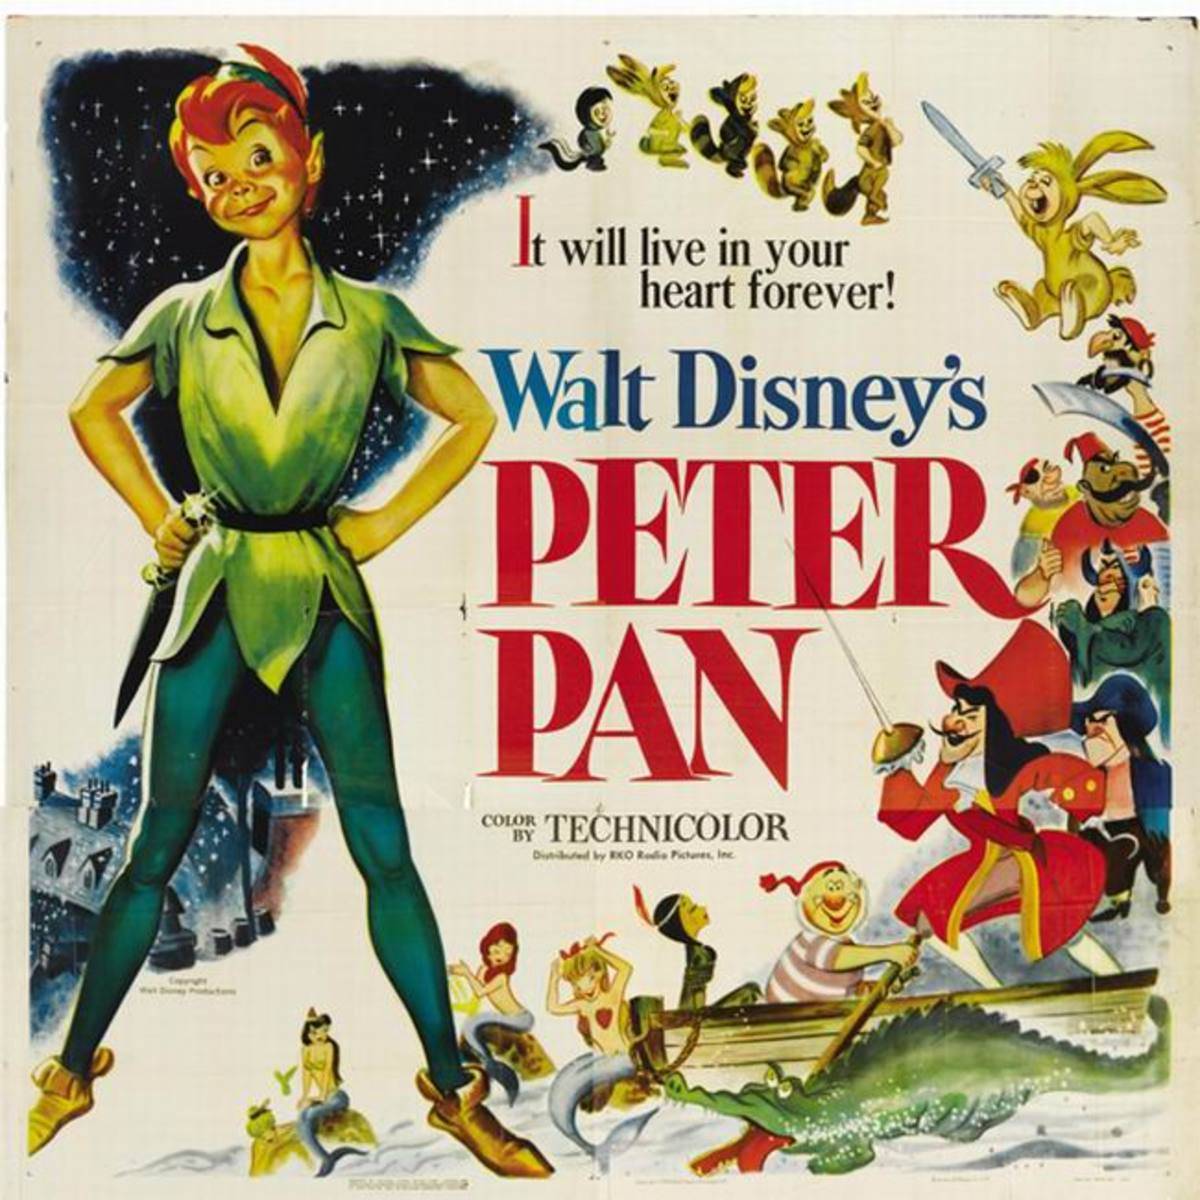 1944 1955 Compiled By John CBS May 12 Cast Margeurite Piazza Tony Martin William Frawley Peter Pan NBC March 7 Music Moose Charlap